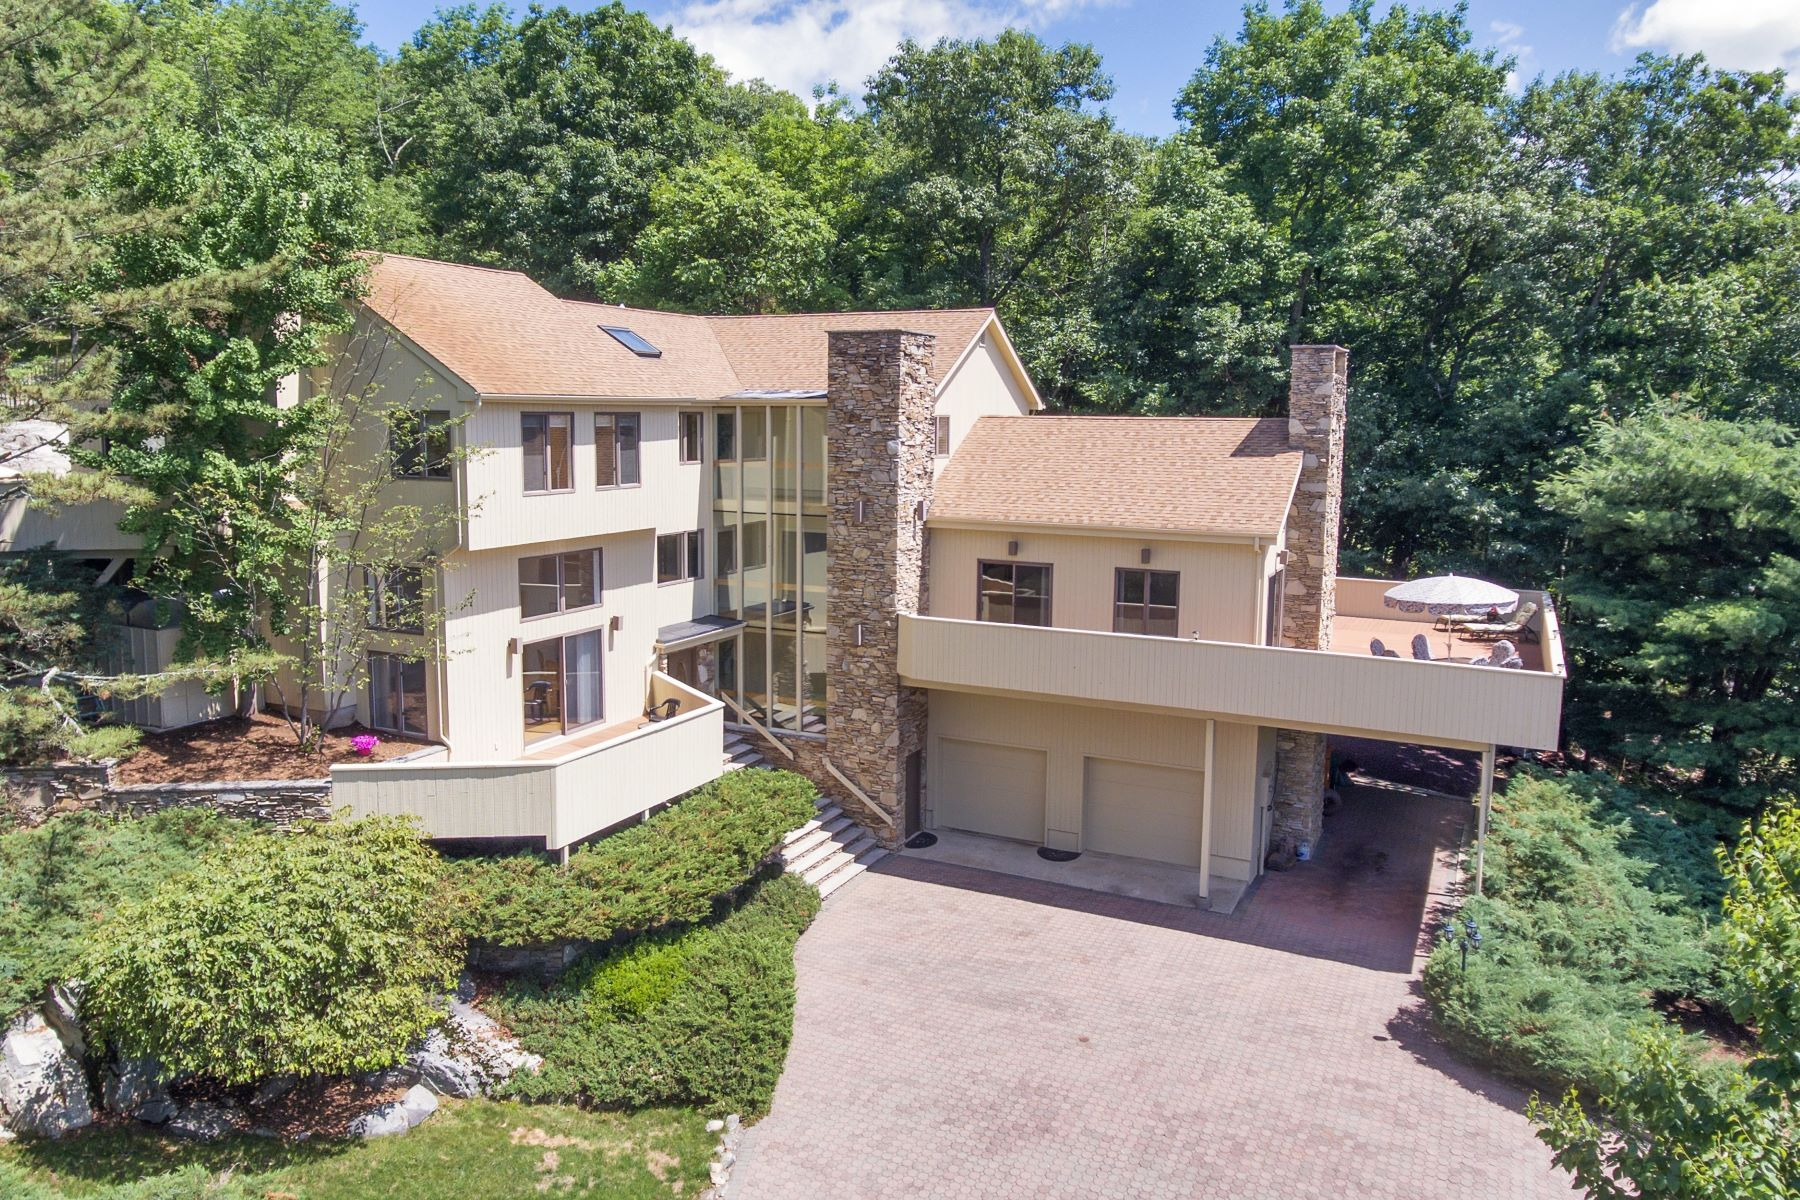 Single Family Homes for Sale at Spectacular Views 7 Eagle Rock Drive Boonton Township, New Jersey 07005 United States